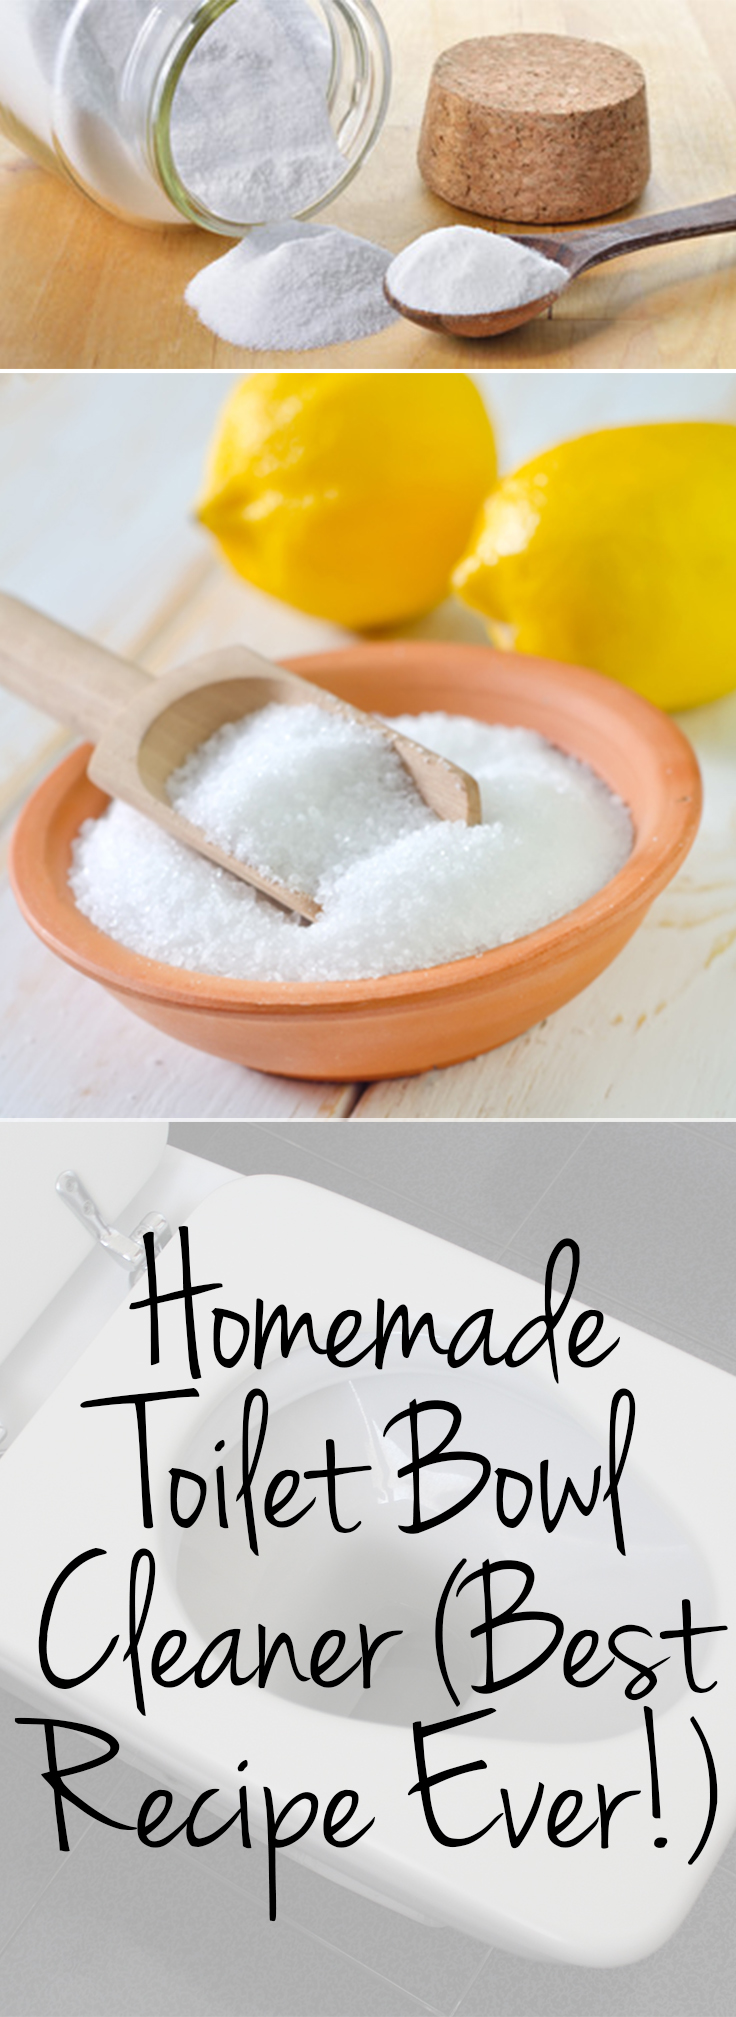 Homemade toilet bowl cleaner, homemade cleaning products, cleaning products, popular pin, DIY cleaning products, cleaning.